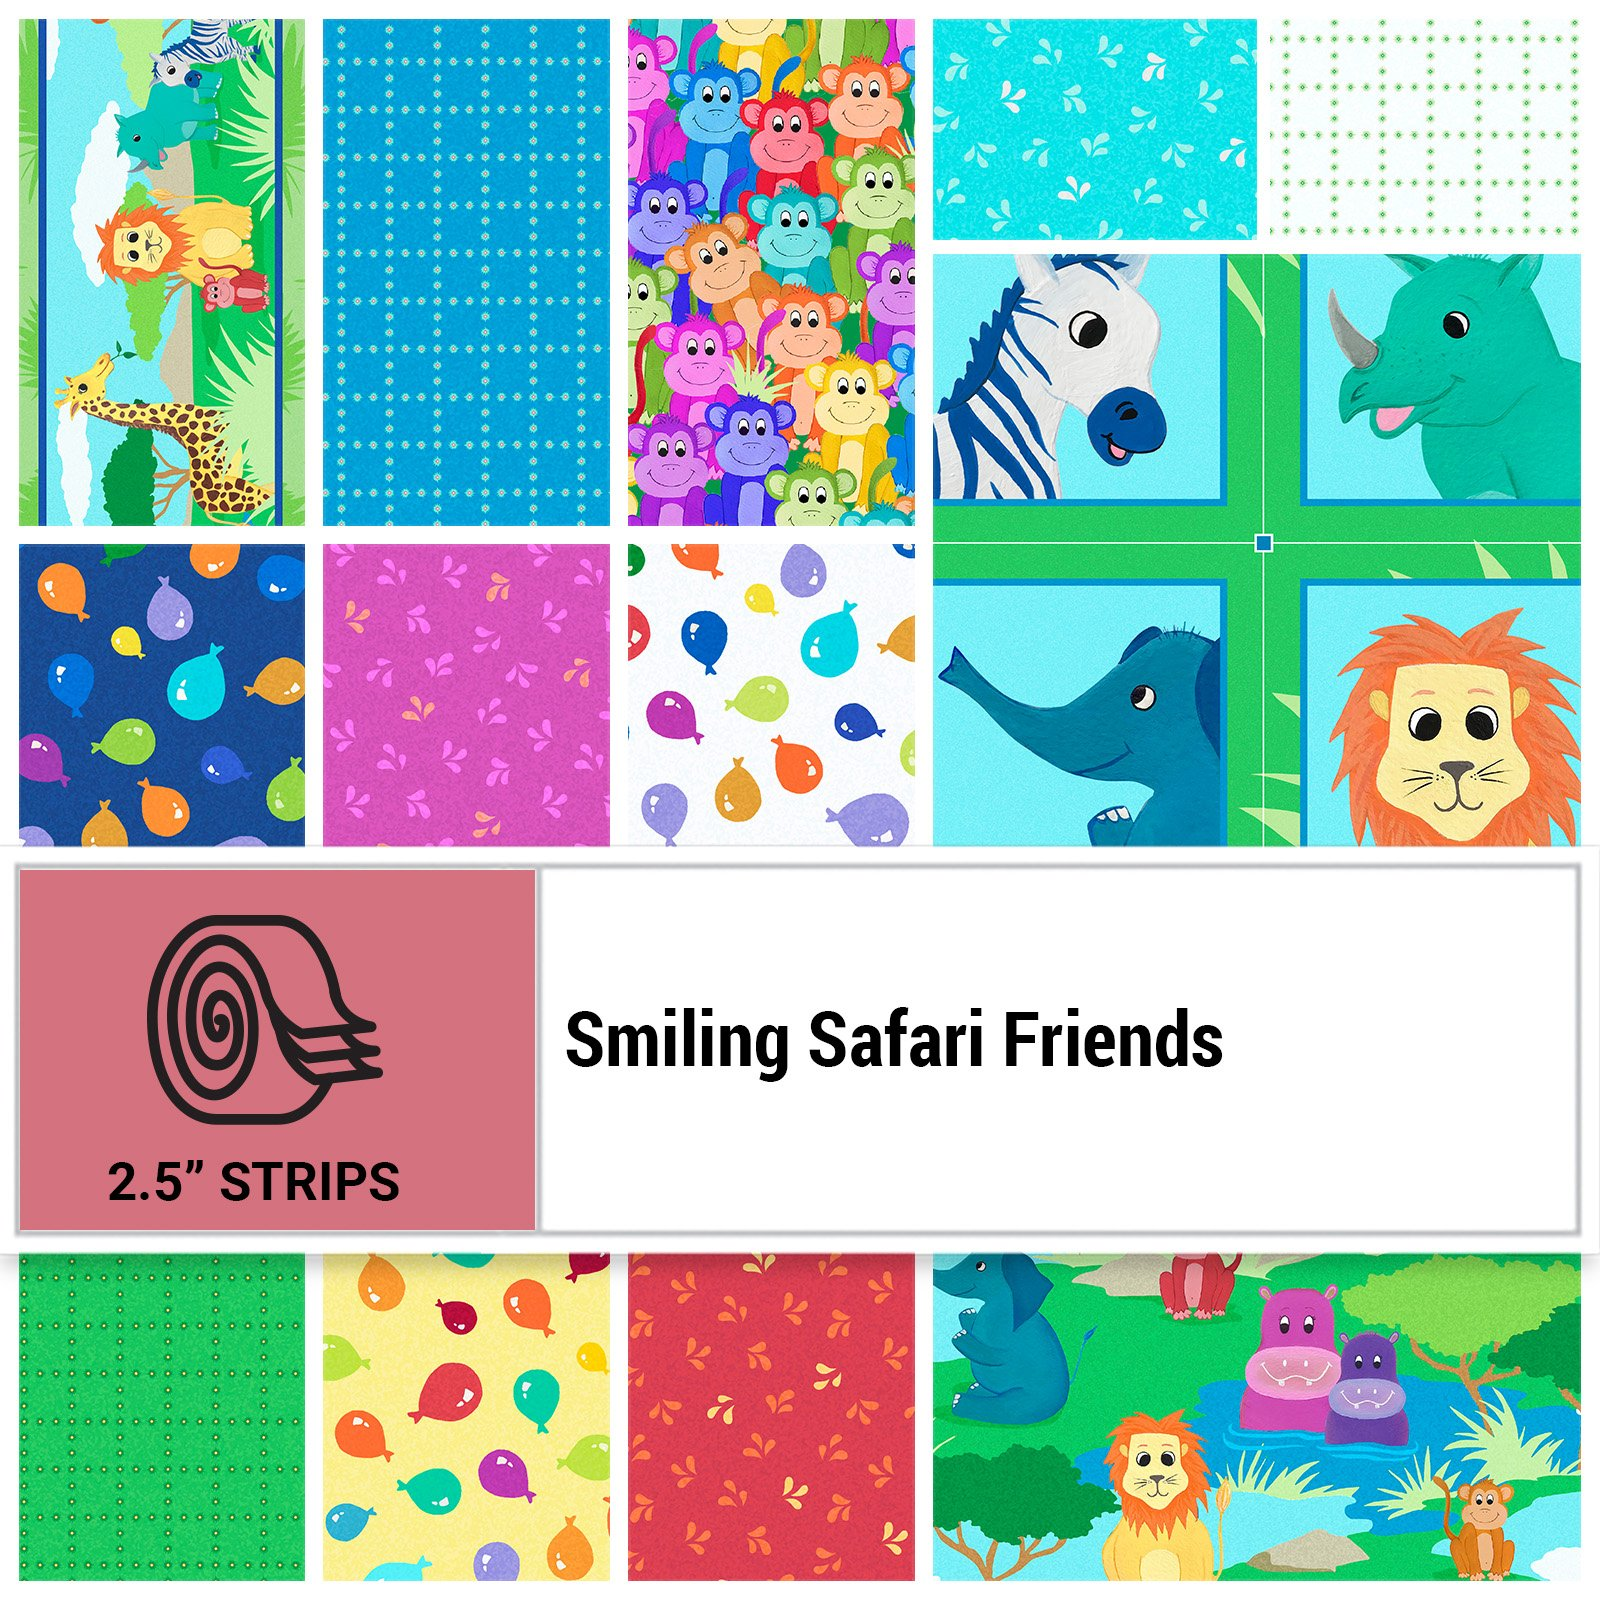 SSFR-STRIPS - SMILING SAFARI FRIENDS 2.5 STRIP ROLLS BY P&B BOUTIQUE 40PCS - ARRIVING IN SEPTEMBER 2021